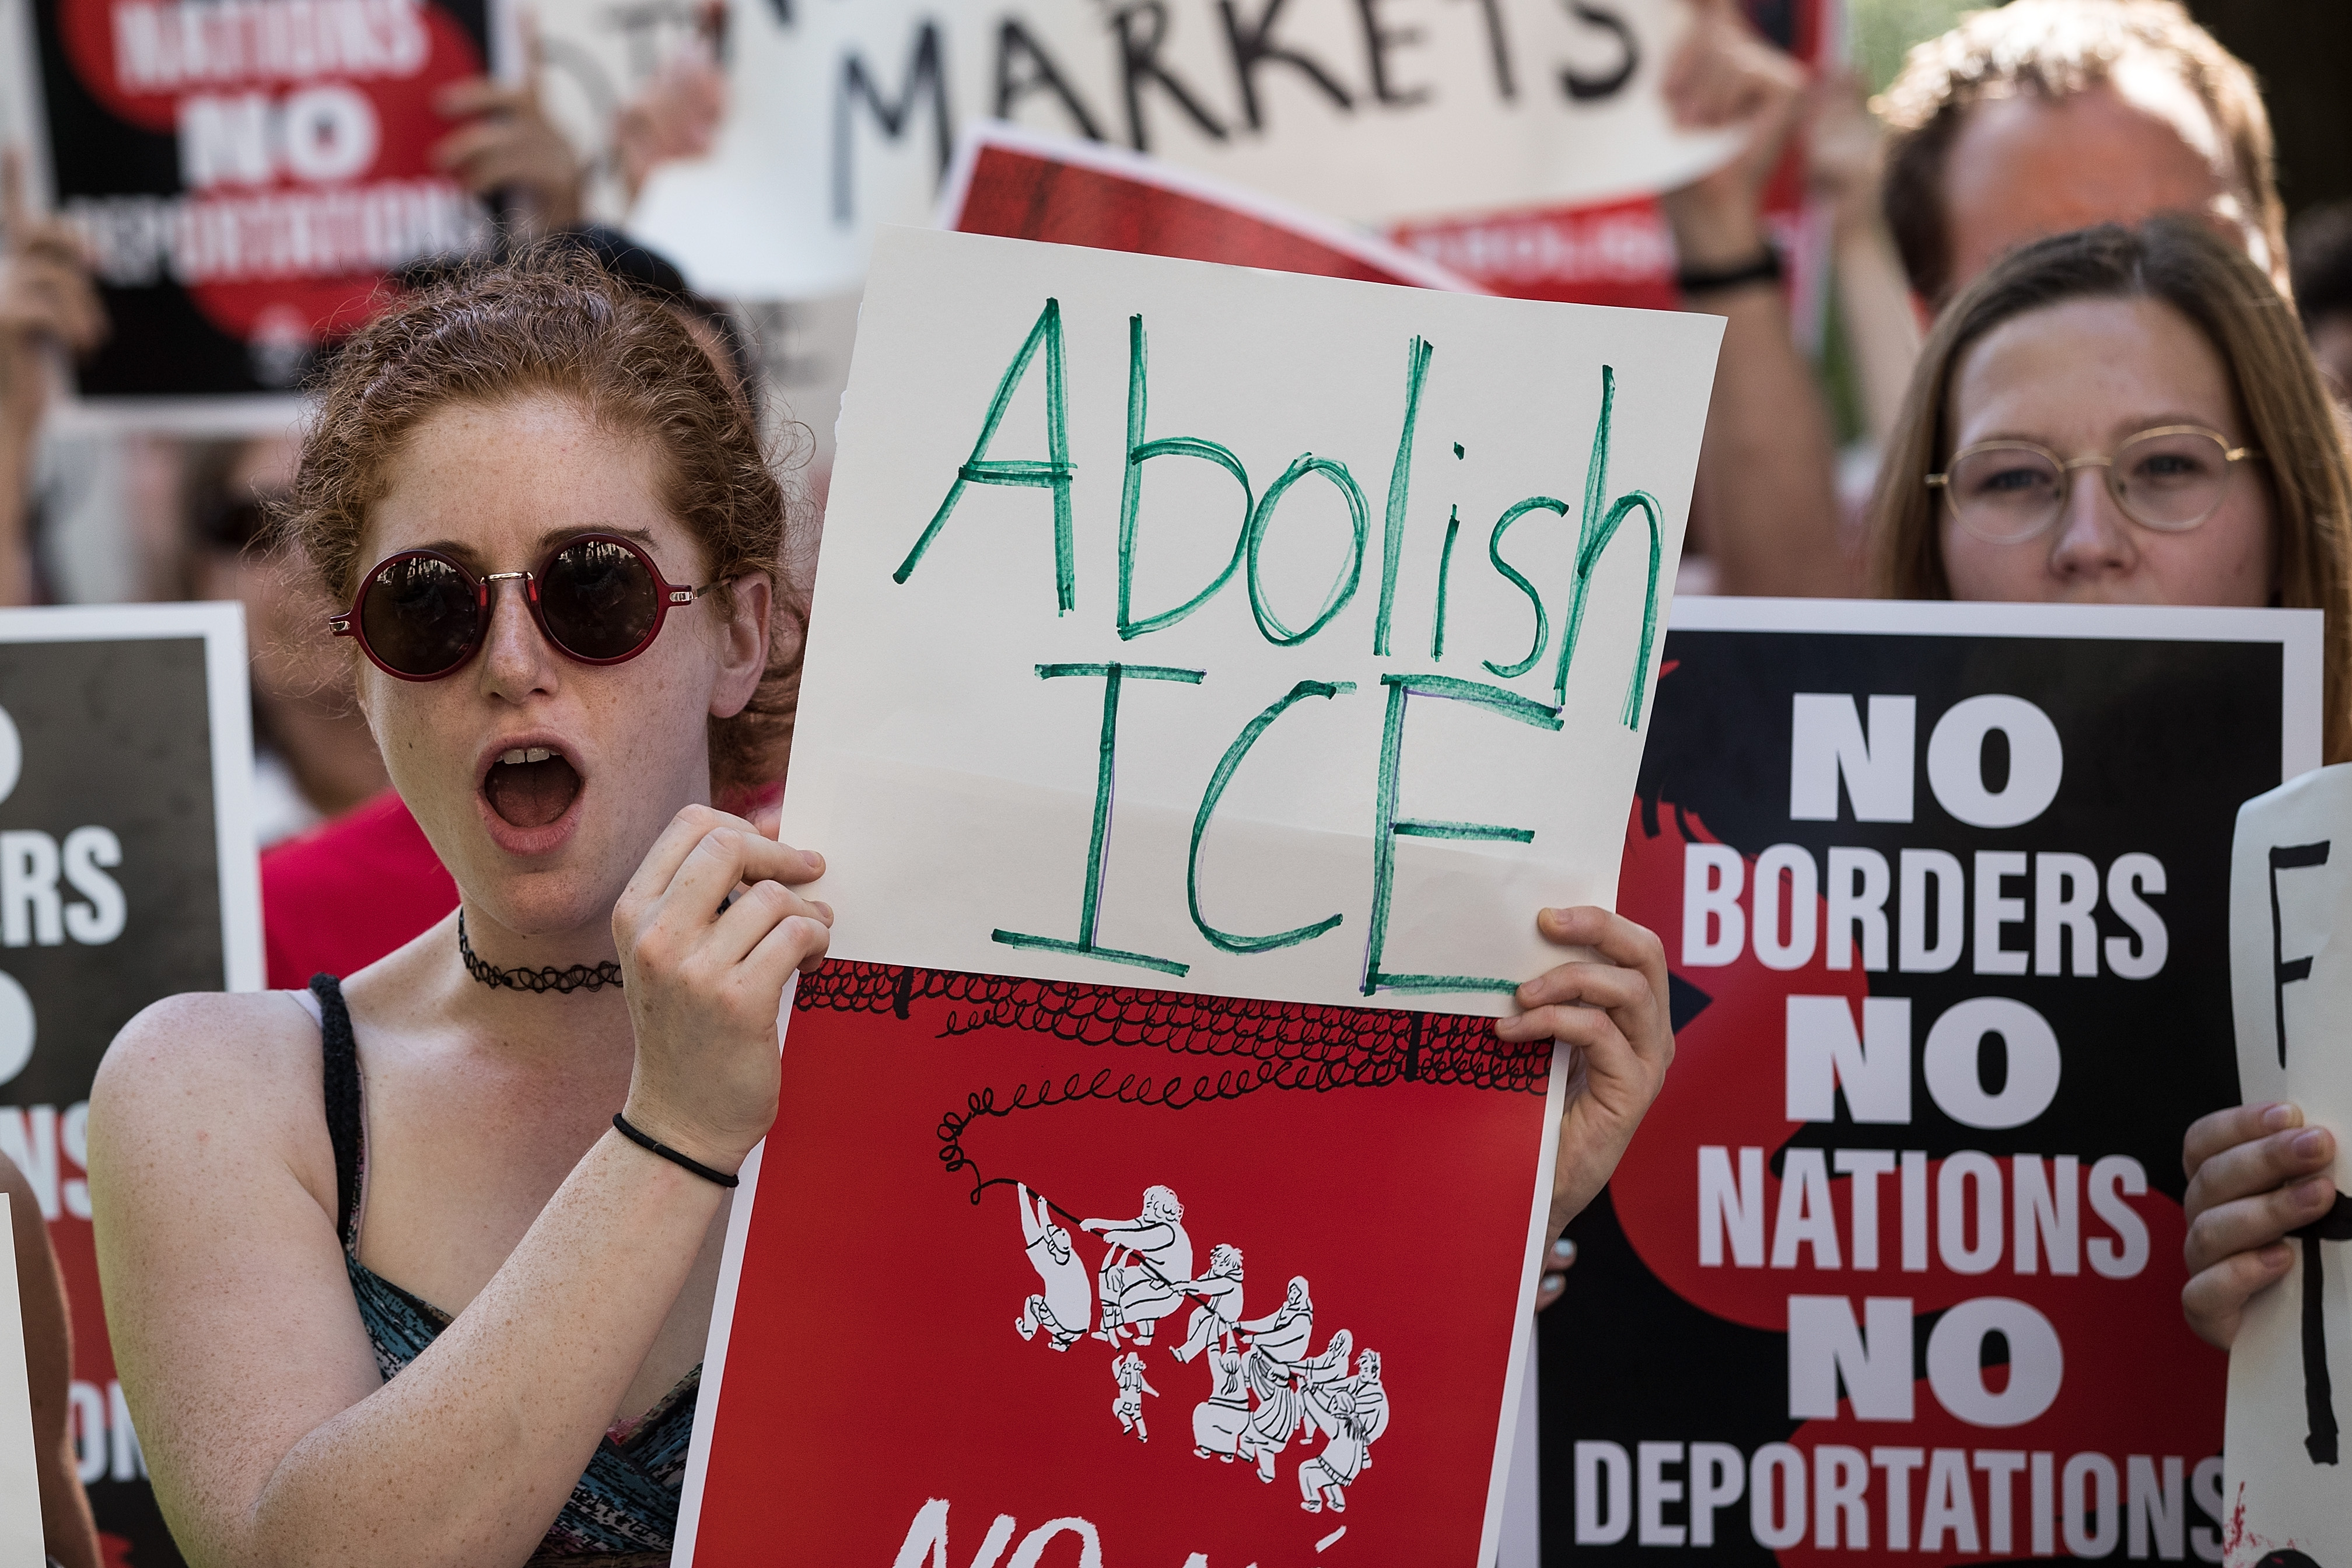 Activists march and rally against Immigration and Customs Enforcement (ICE) and the Trump administration's immigration policies, near the ICE offices in Federal Plaza, June 29, 2018 in New York City. (Photo by Drew Angerer/Getty Images)